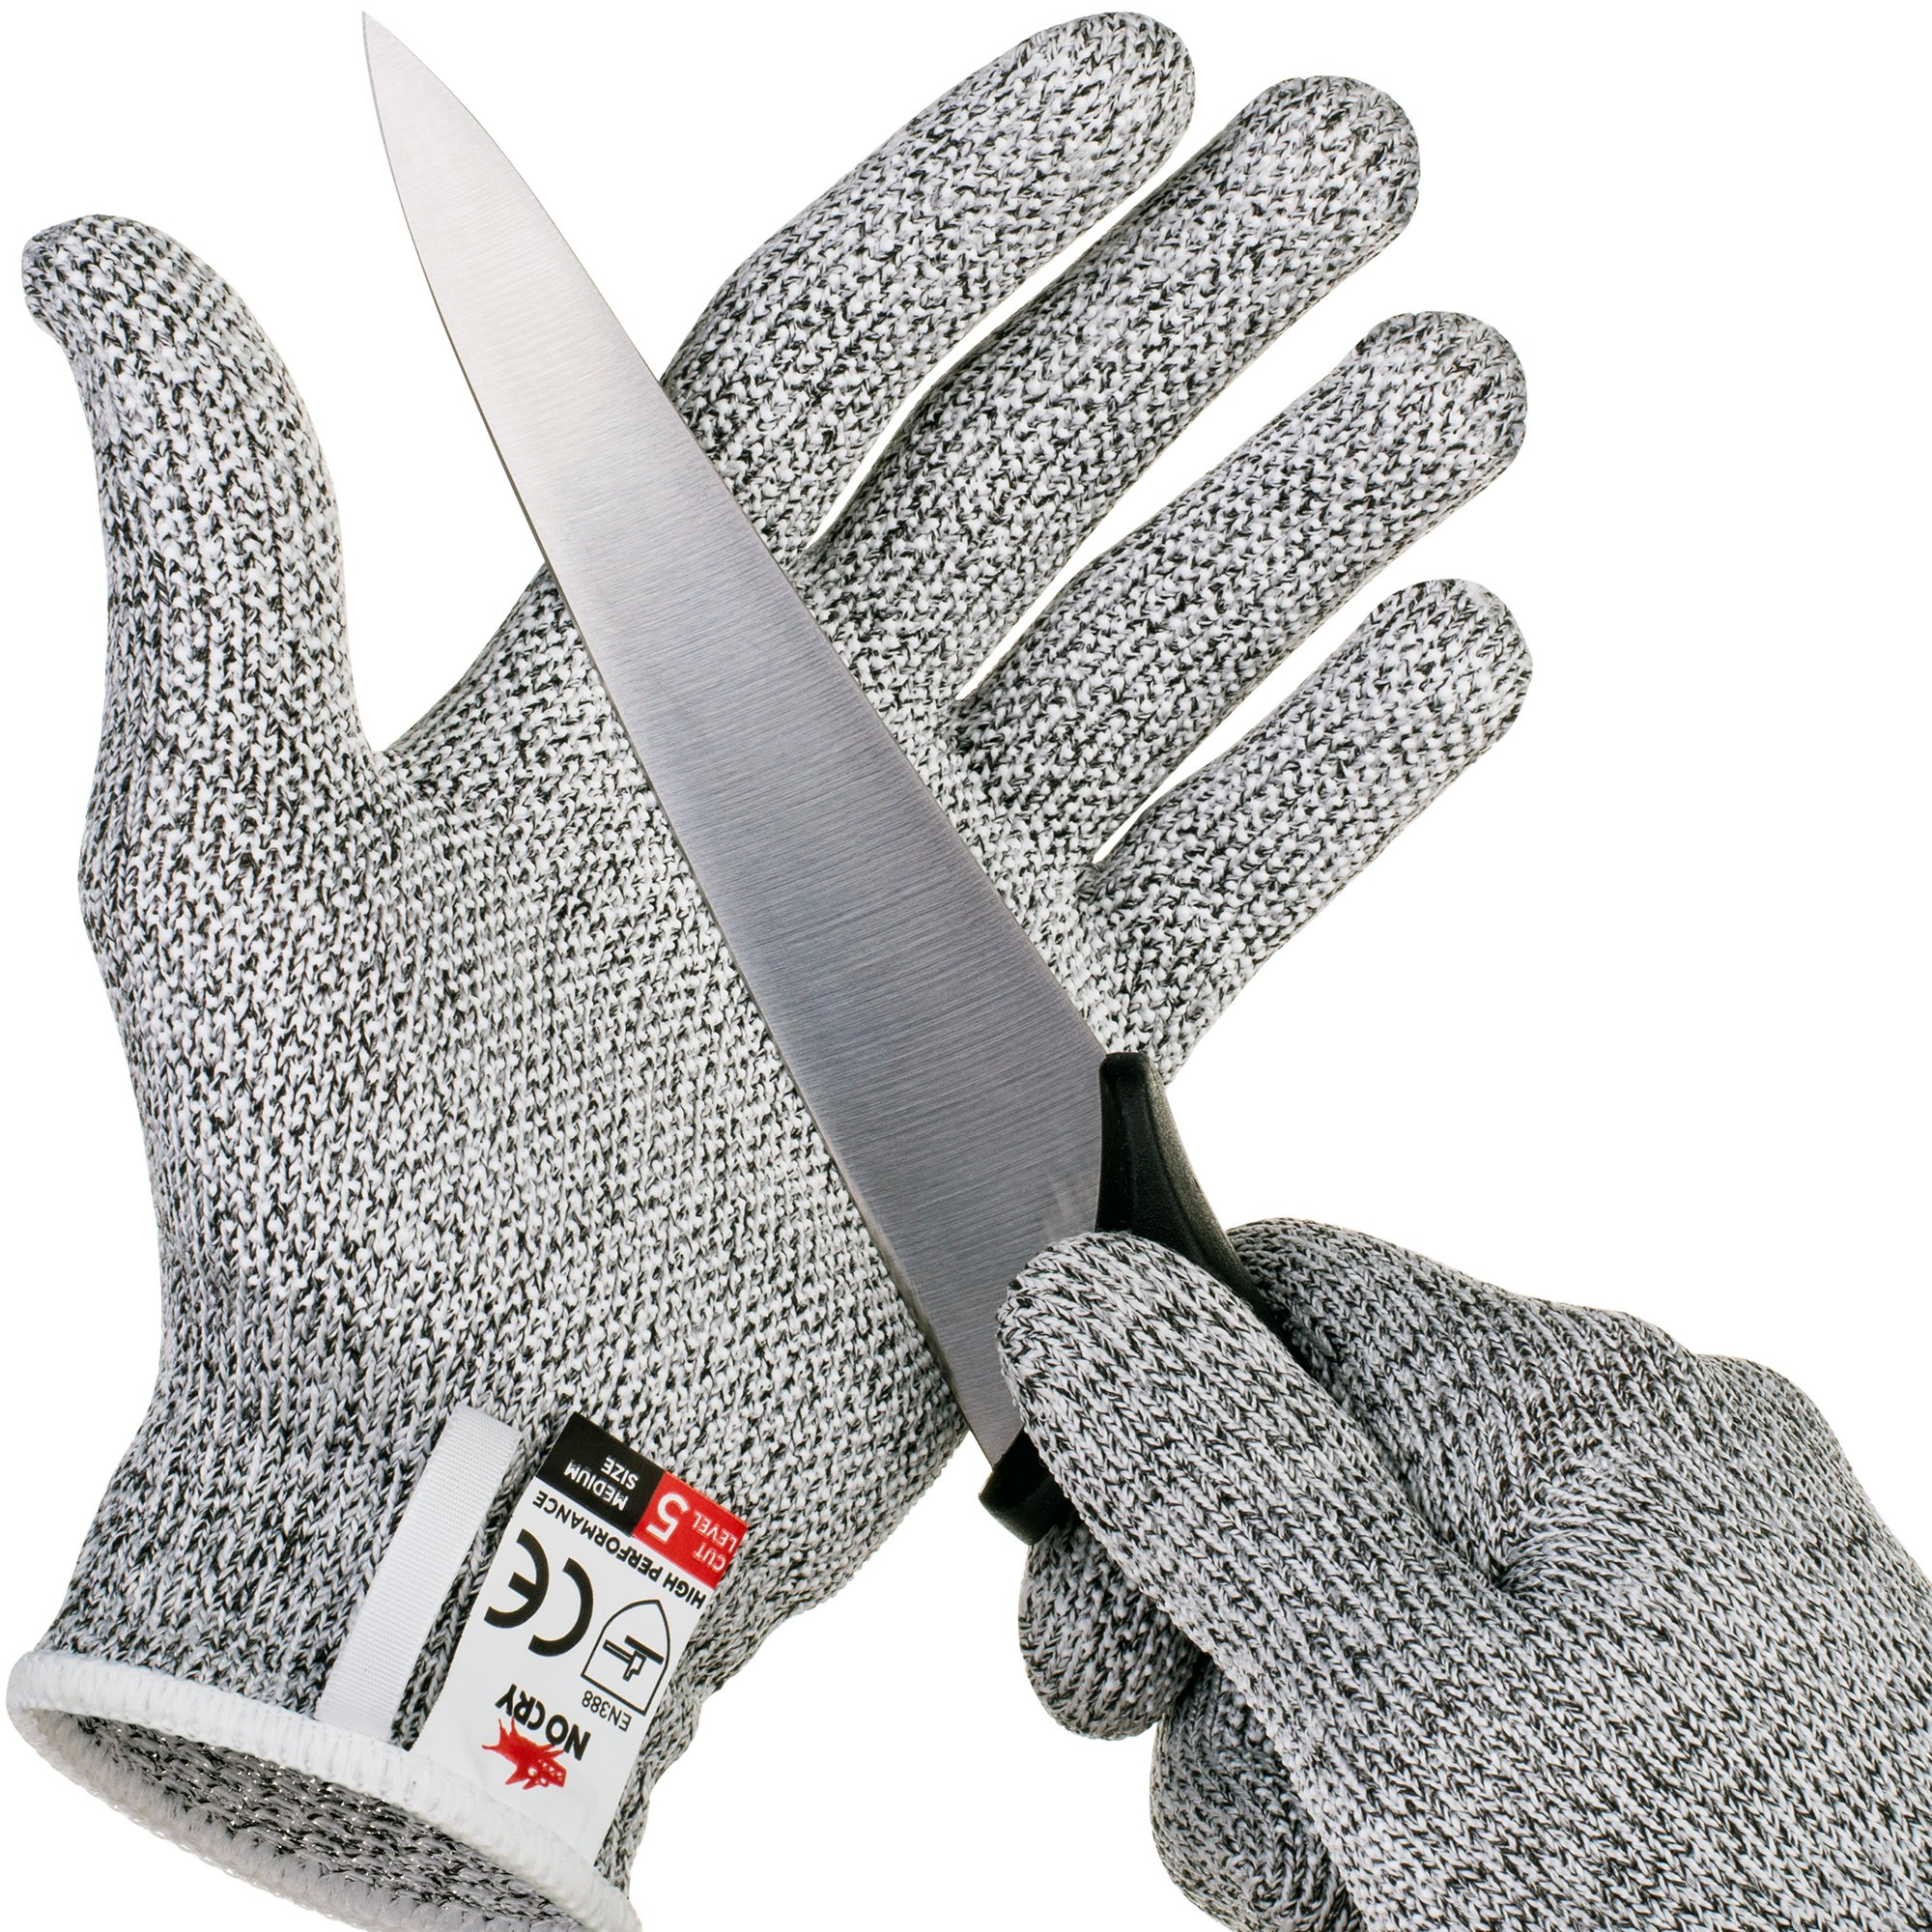 NoCry Cut Resistant Gloves with Grip Dots - High Performance Level 5 Protection, Food Grade. Size Large, Free Ebook Included! by NoCry (Image #1)